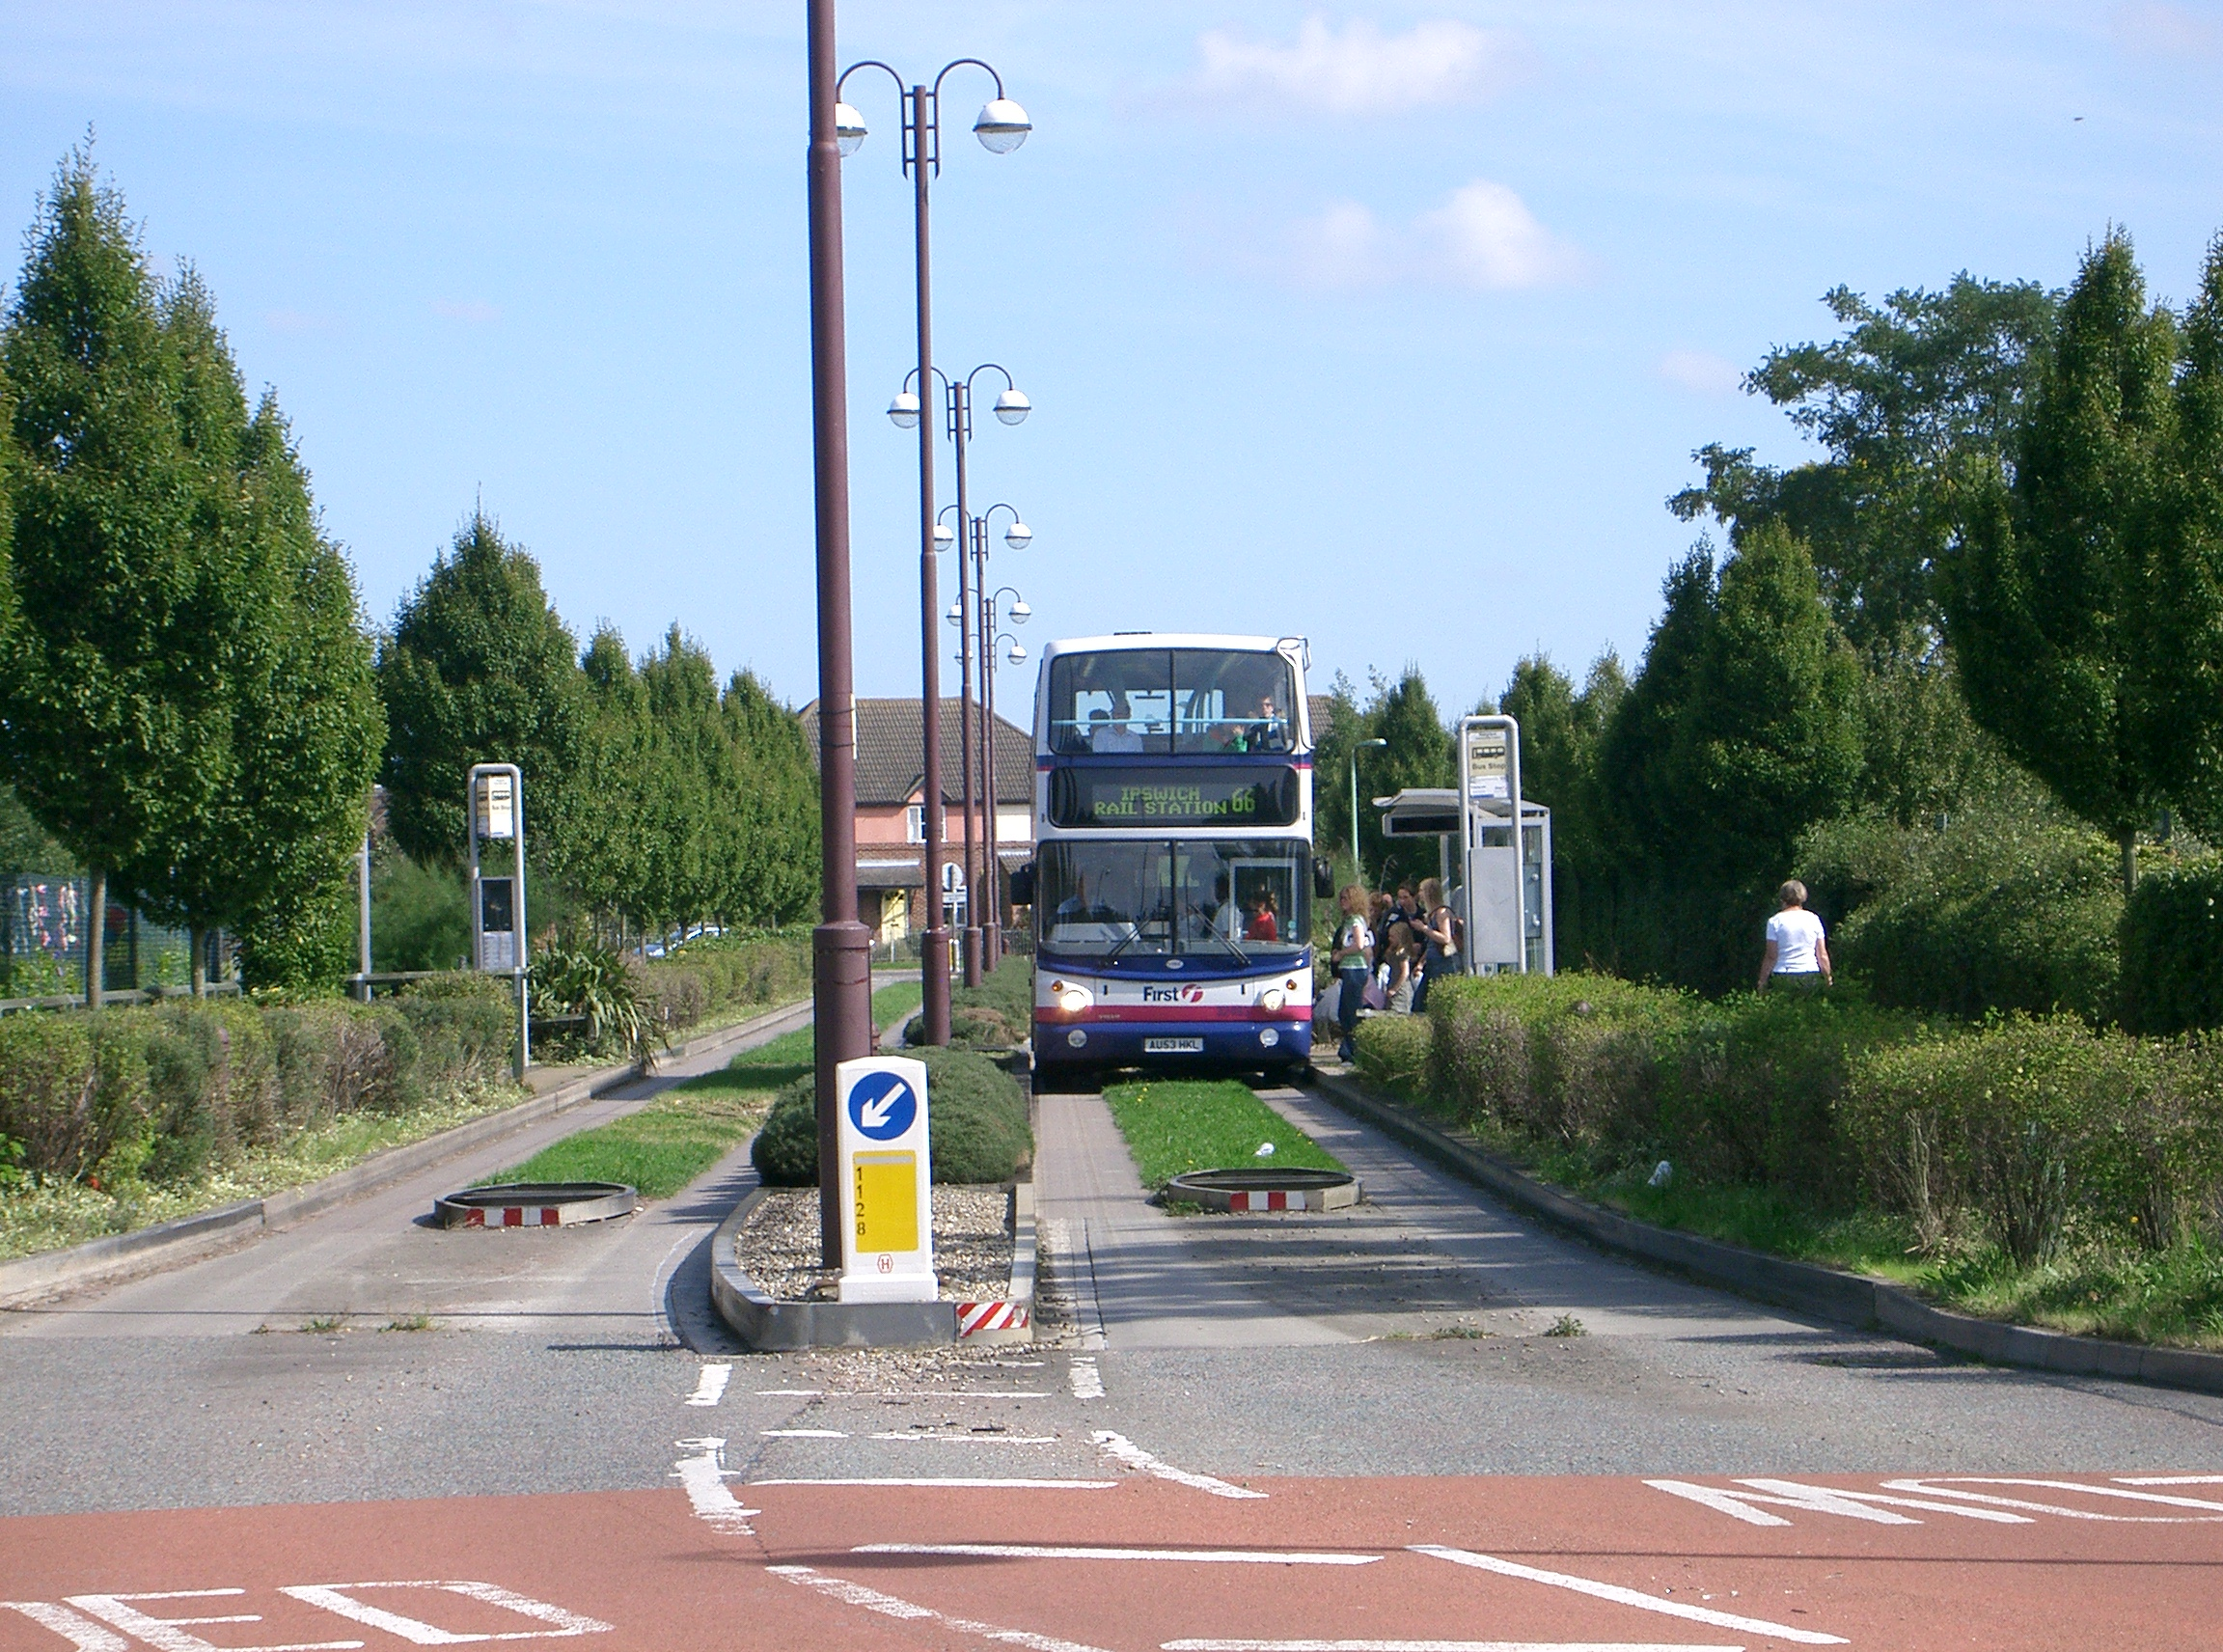 #AYearOfBuses 66: Superoute 66 Ipswich – Martlesham Heath